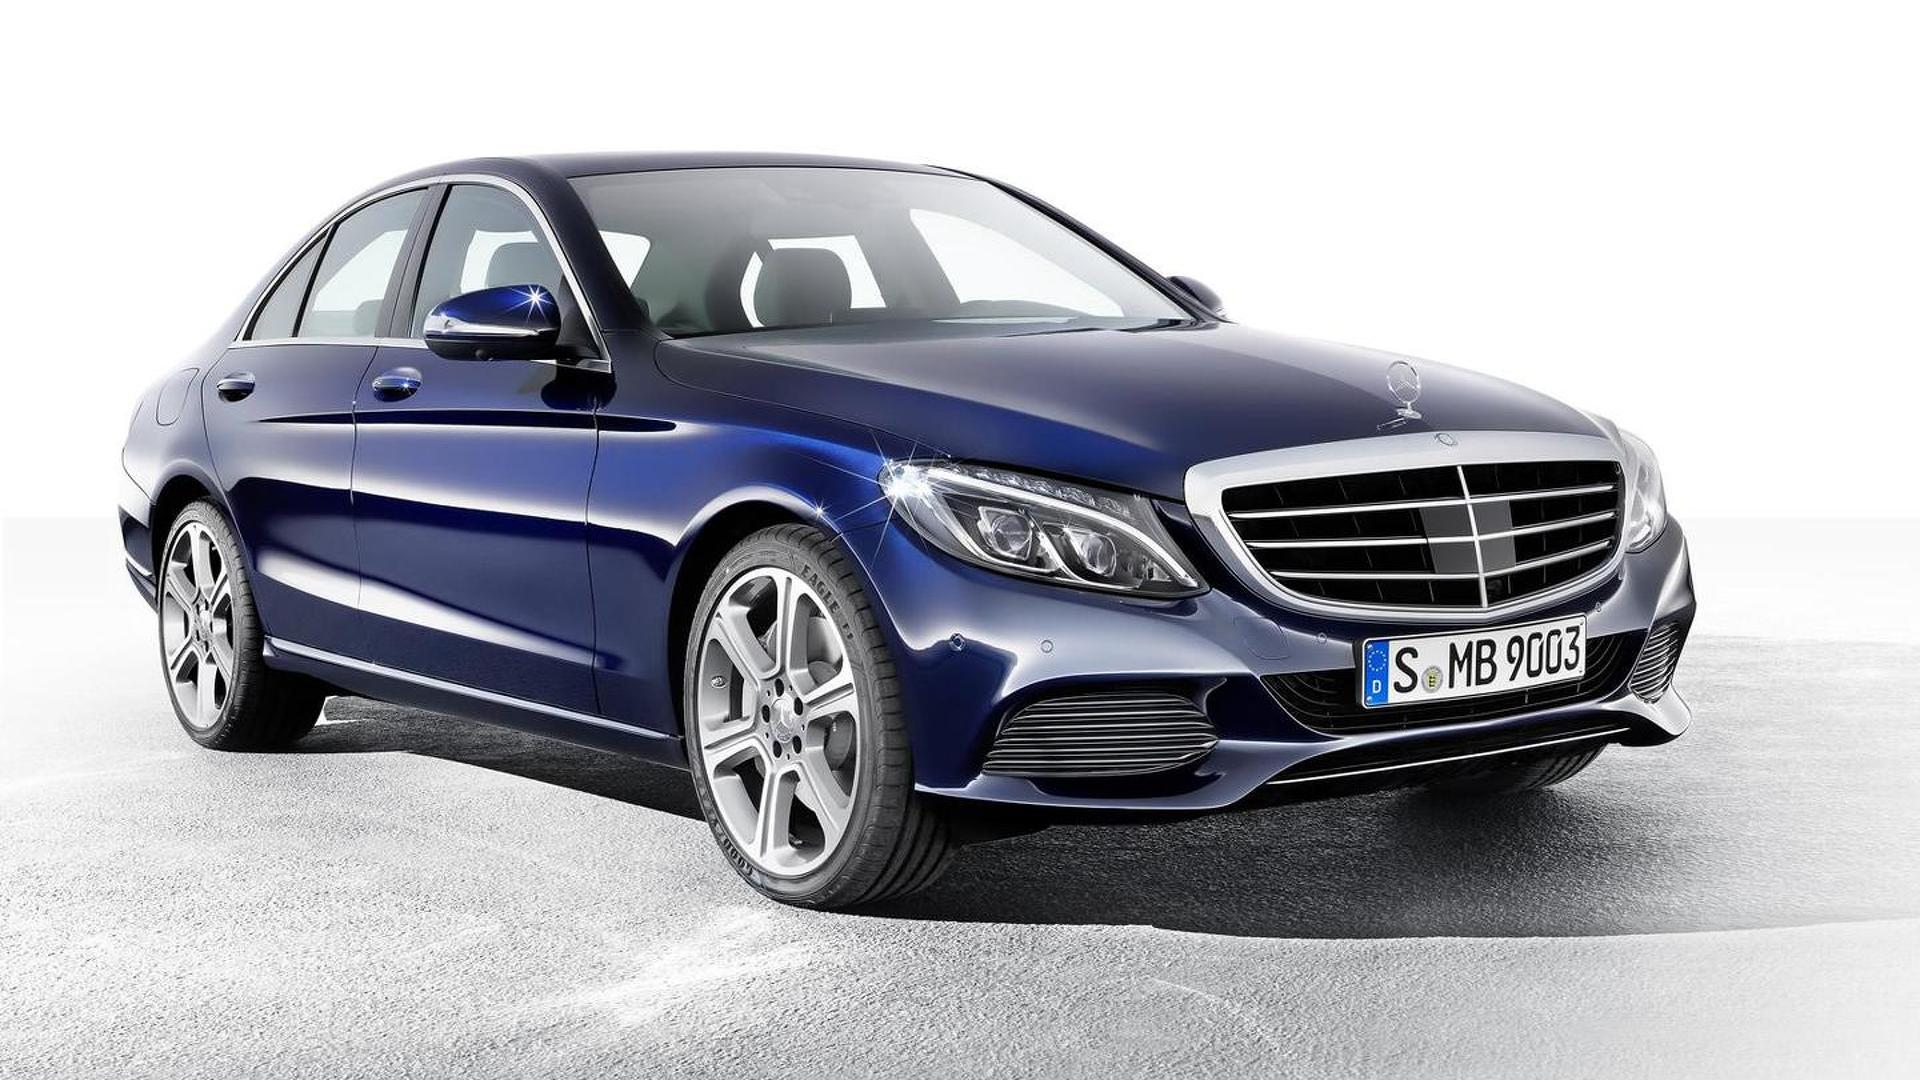 Mercedes-Benz says no to three-cylinder engines for RWD sedans